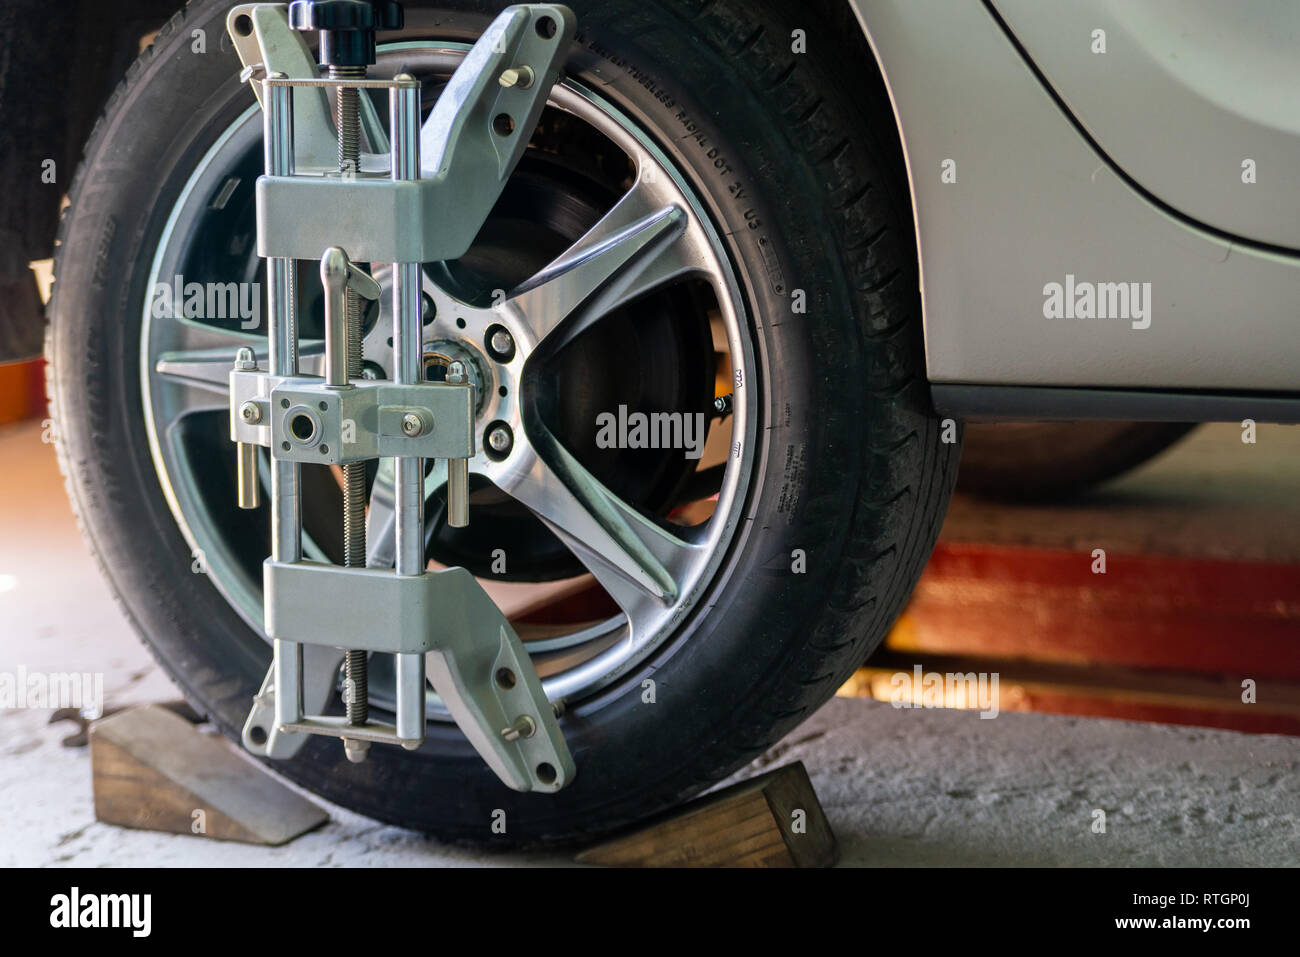 Car on stand with sensors on wheels for wheels alignment camber check in workshop of Service station. - Stock Image